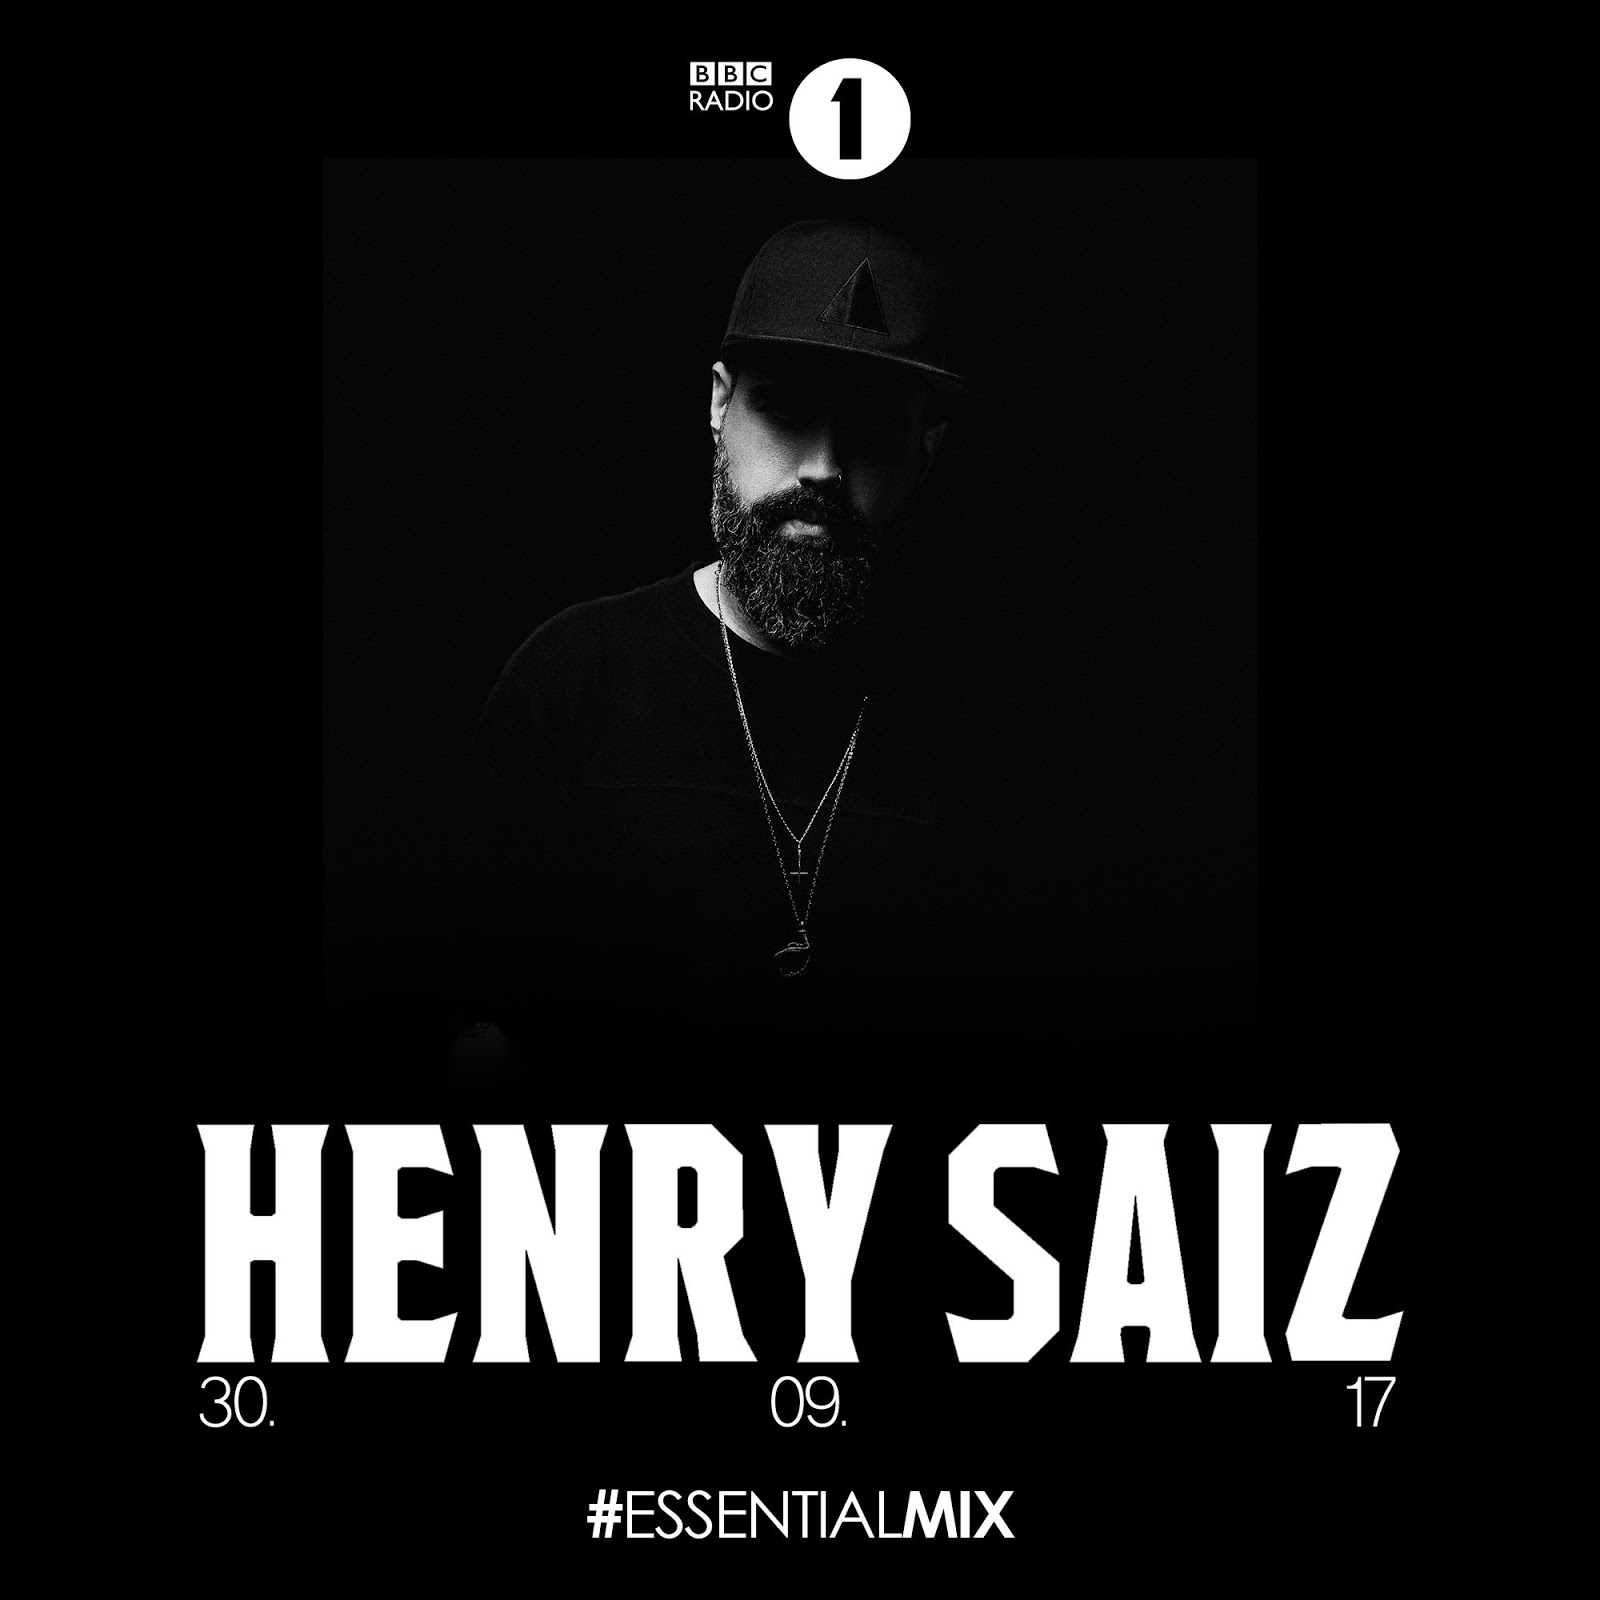 download → Henry Saiz - Essential Mix (Radio One) - 30-Sep-2017